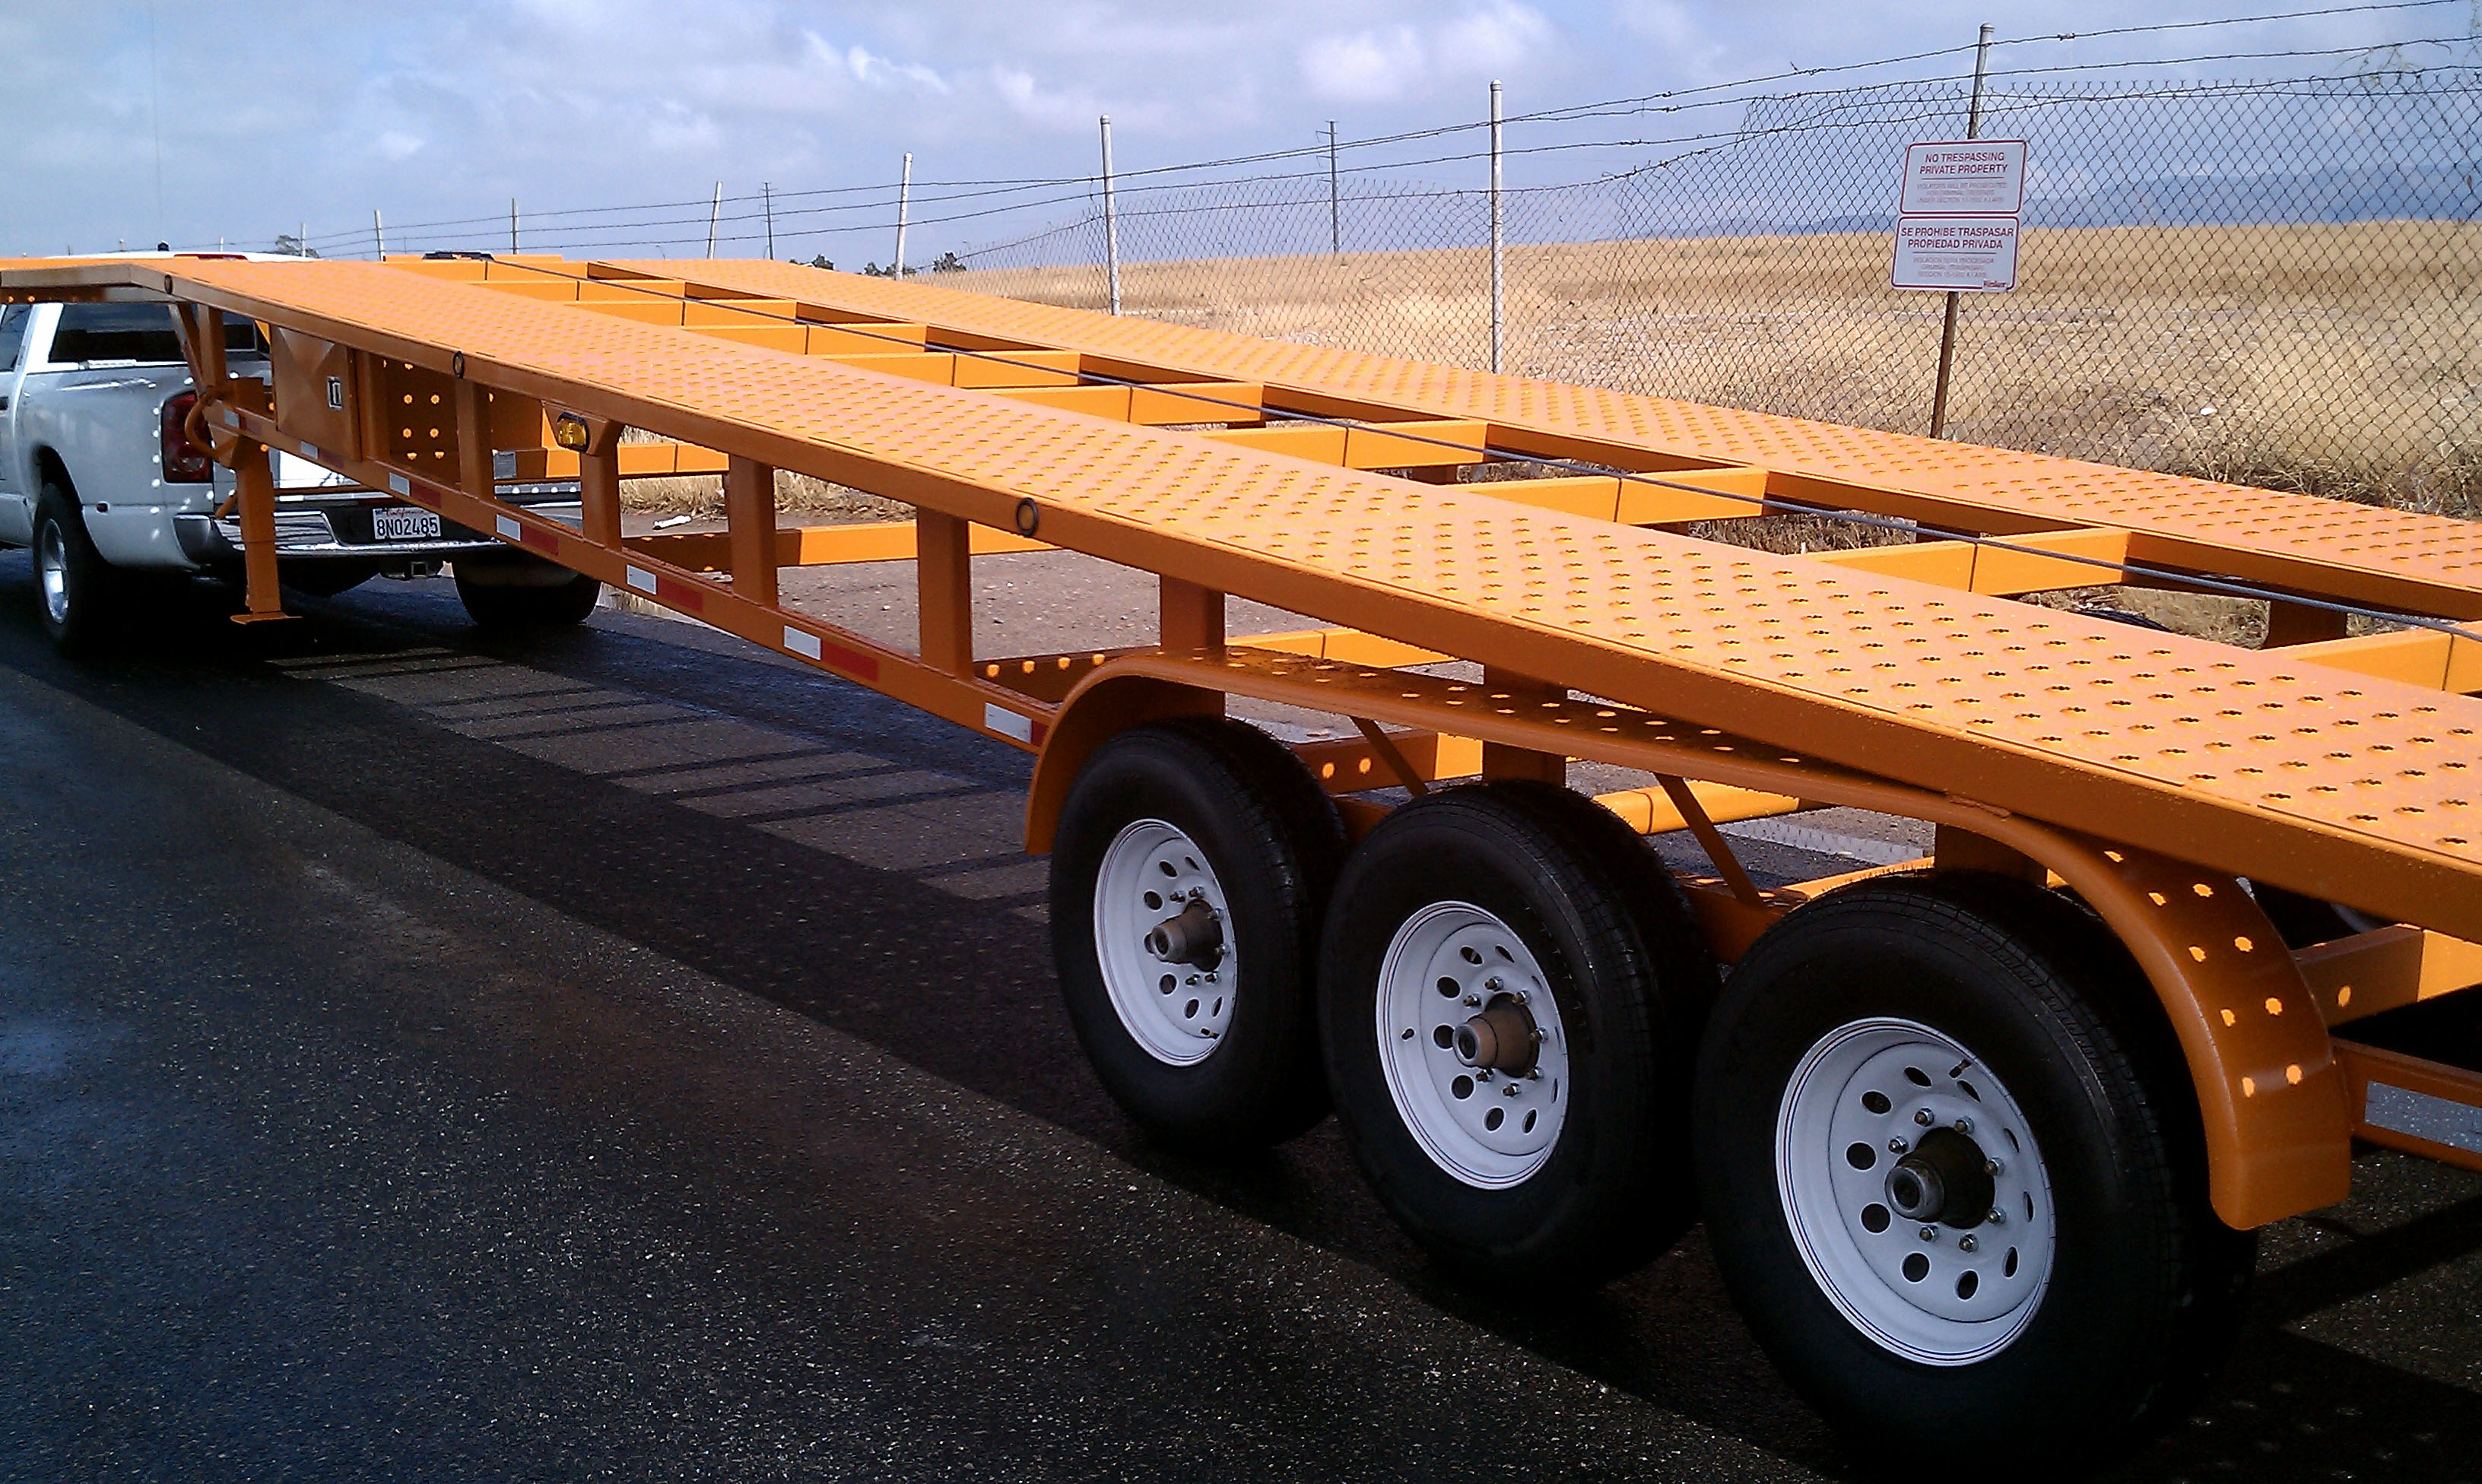 48 Or 53 Foot Wedge 3 Car Hauler SunCountry Trailers